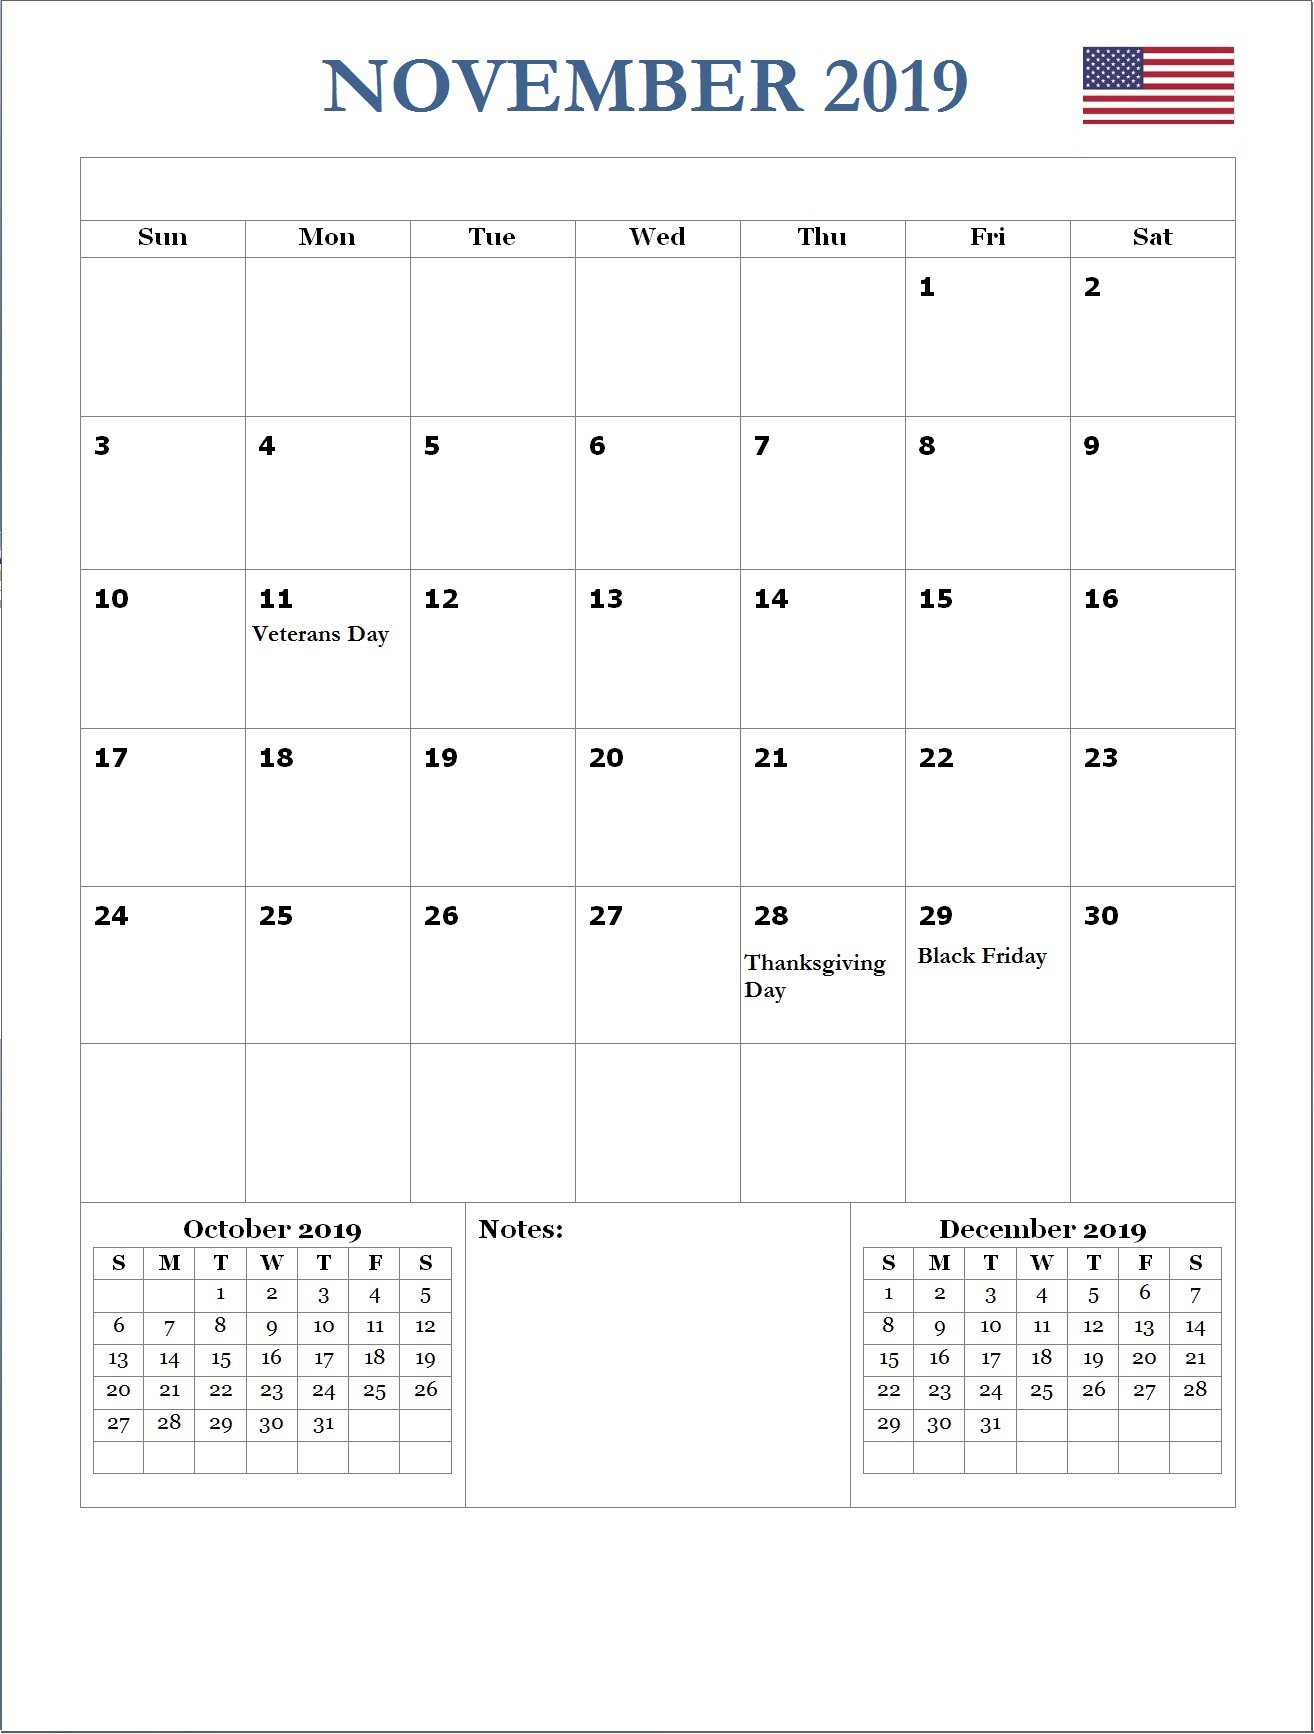 2019 November USA Holidays Calendar